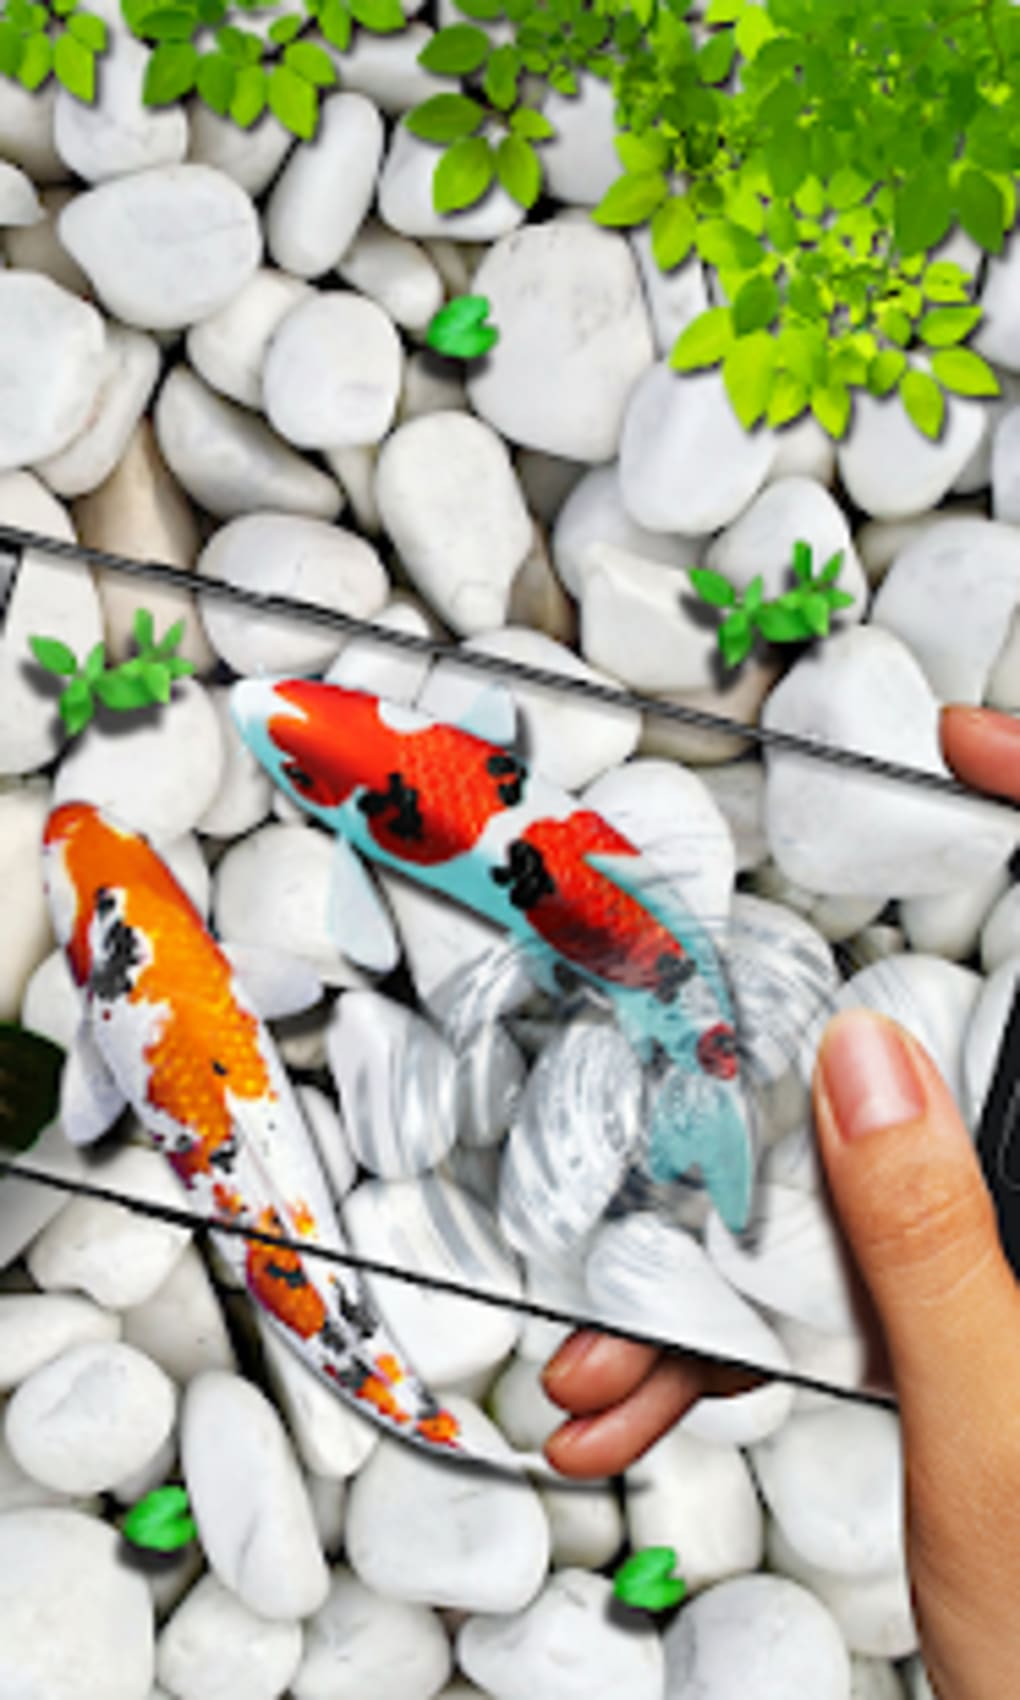 Fish Live Wallpaper 2019 3d Aquarium Koi Pond For Android